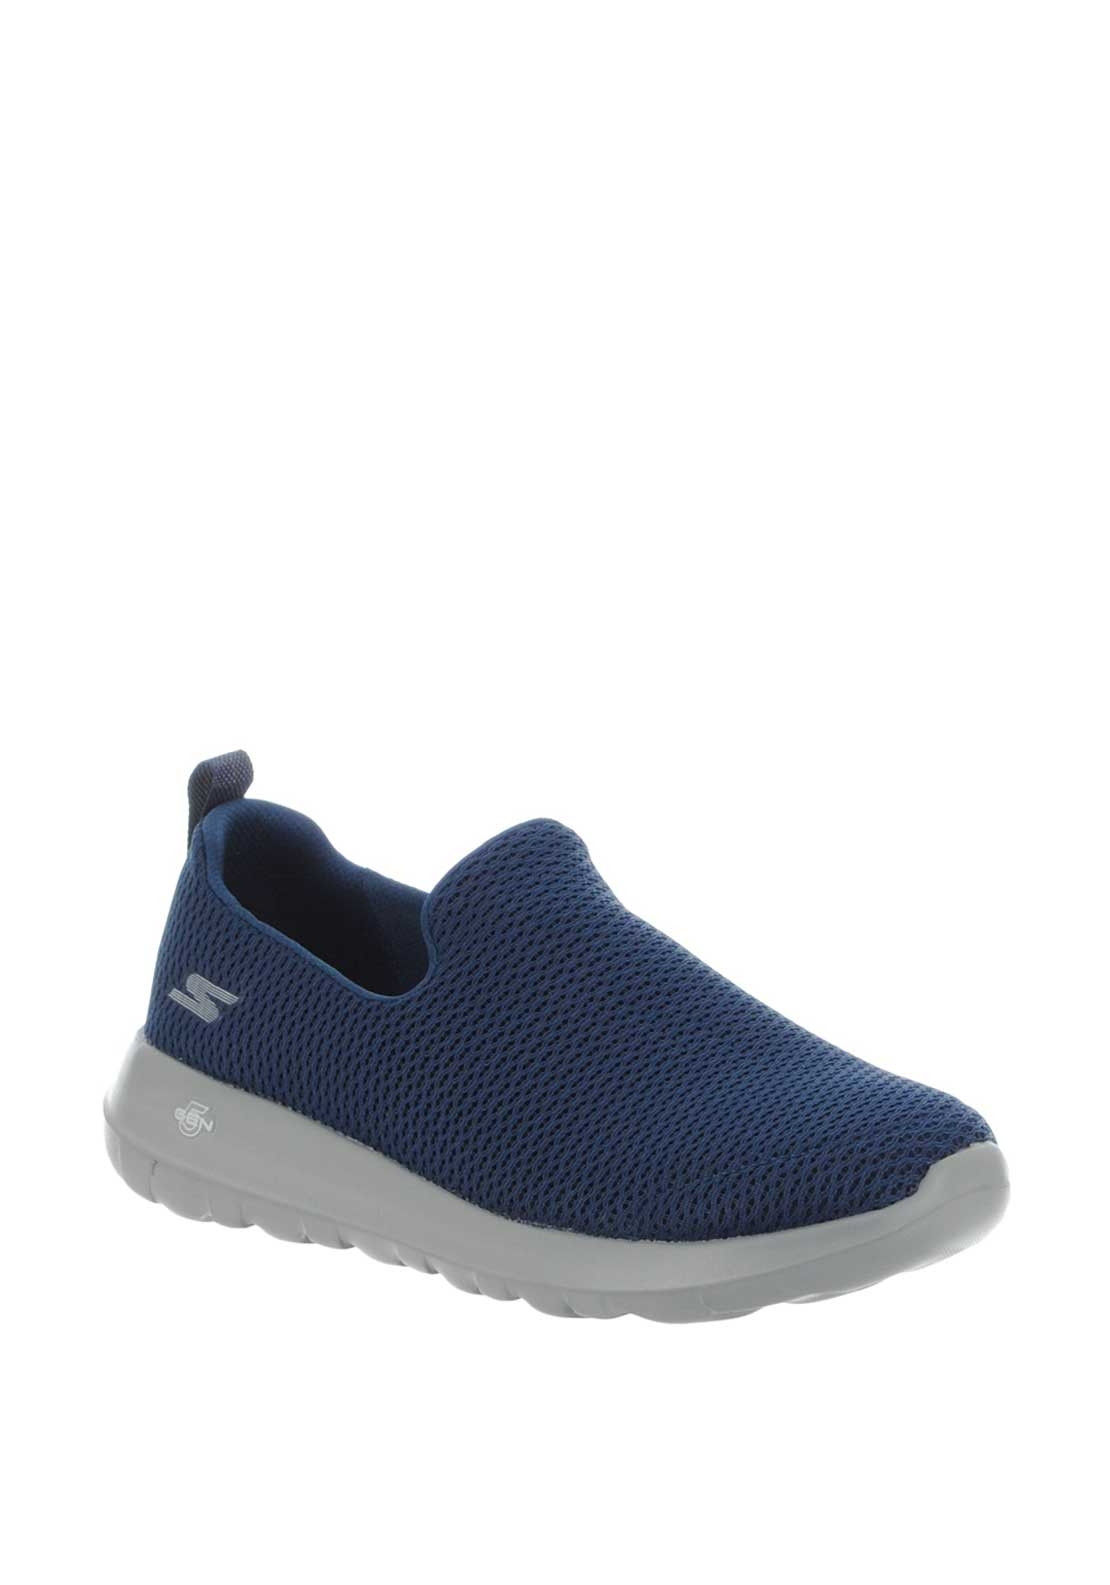 enjoy lowest price discount shop info for Skechers Men's Goga Max Trainers, Navy